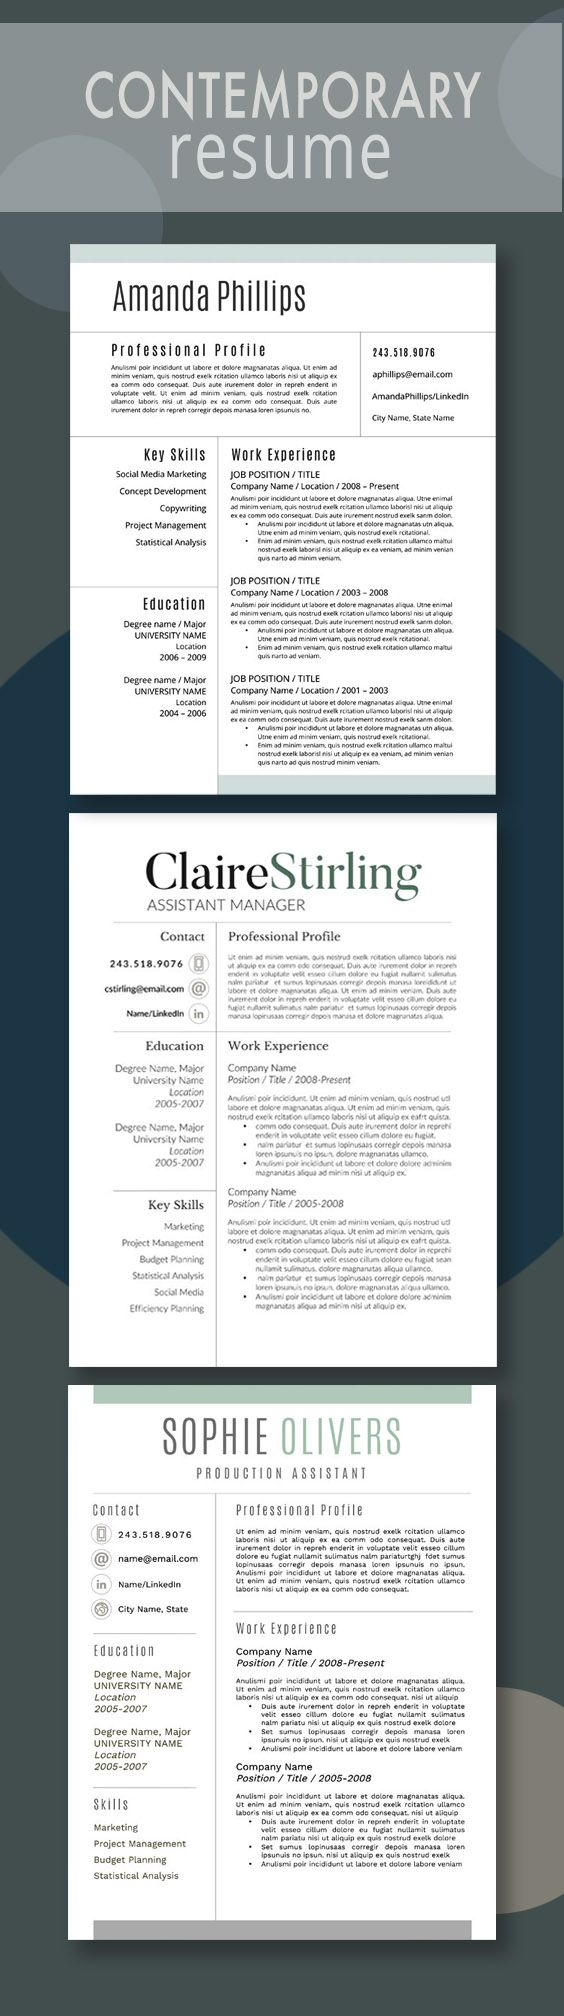 letter format for application%0A Super happy with my resume template  great service